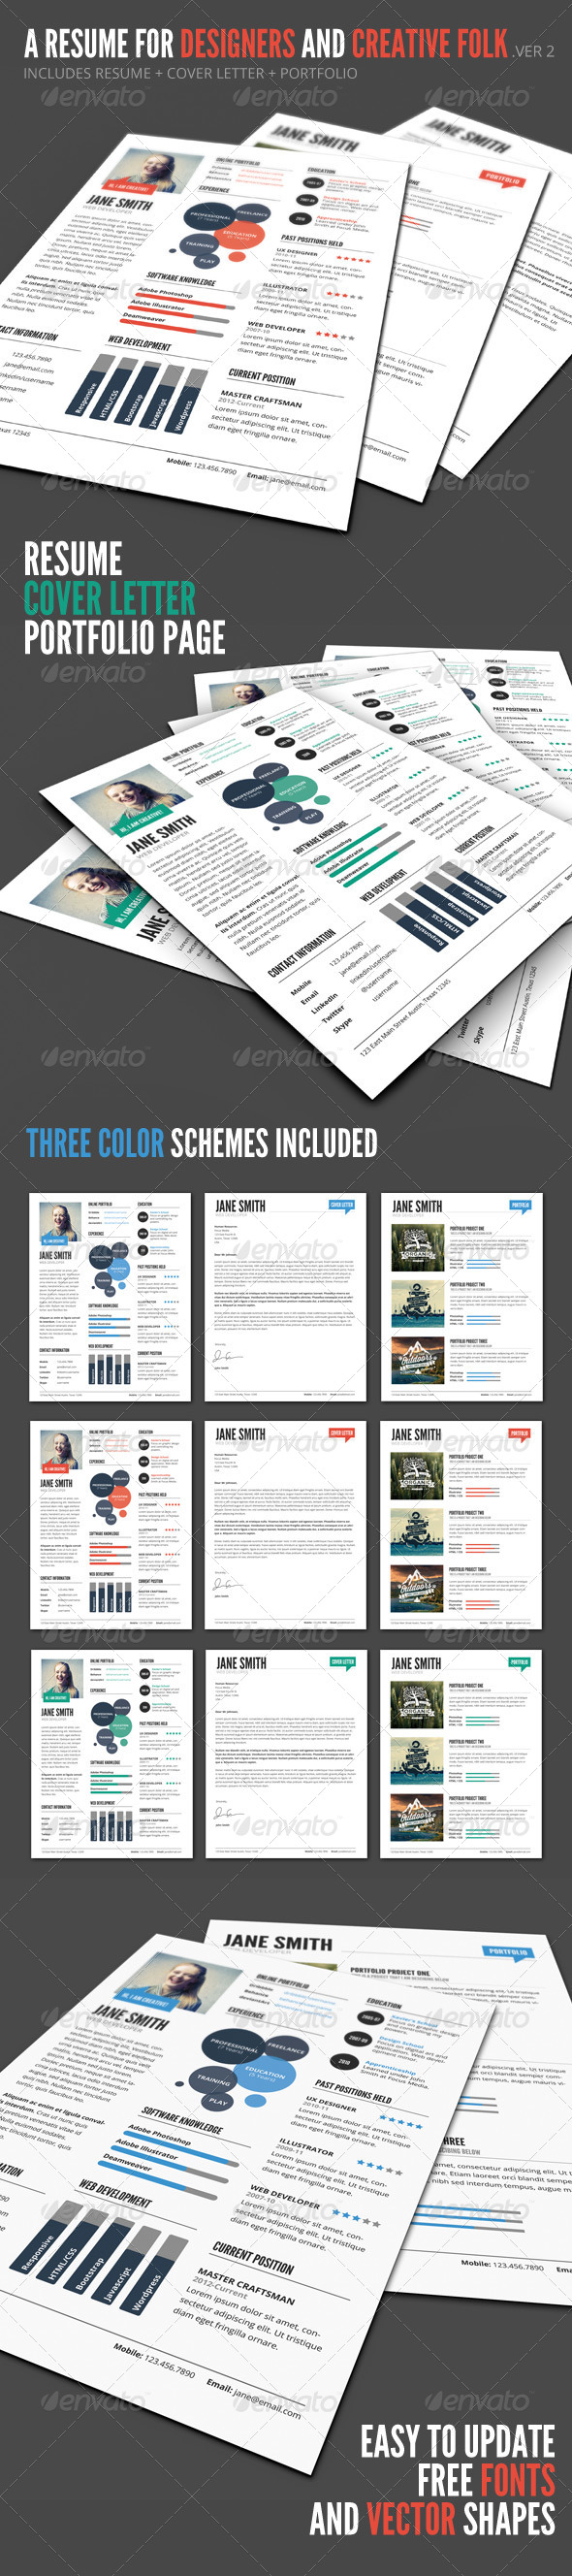 InfoGraphic Style Resume Template - Ver 2 - http://graphicriver.net/item/-infographic-style-resume-template-ver-2/7985766?WT.ac=search_thumb&WT.z_author=GraphicMonkee